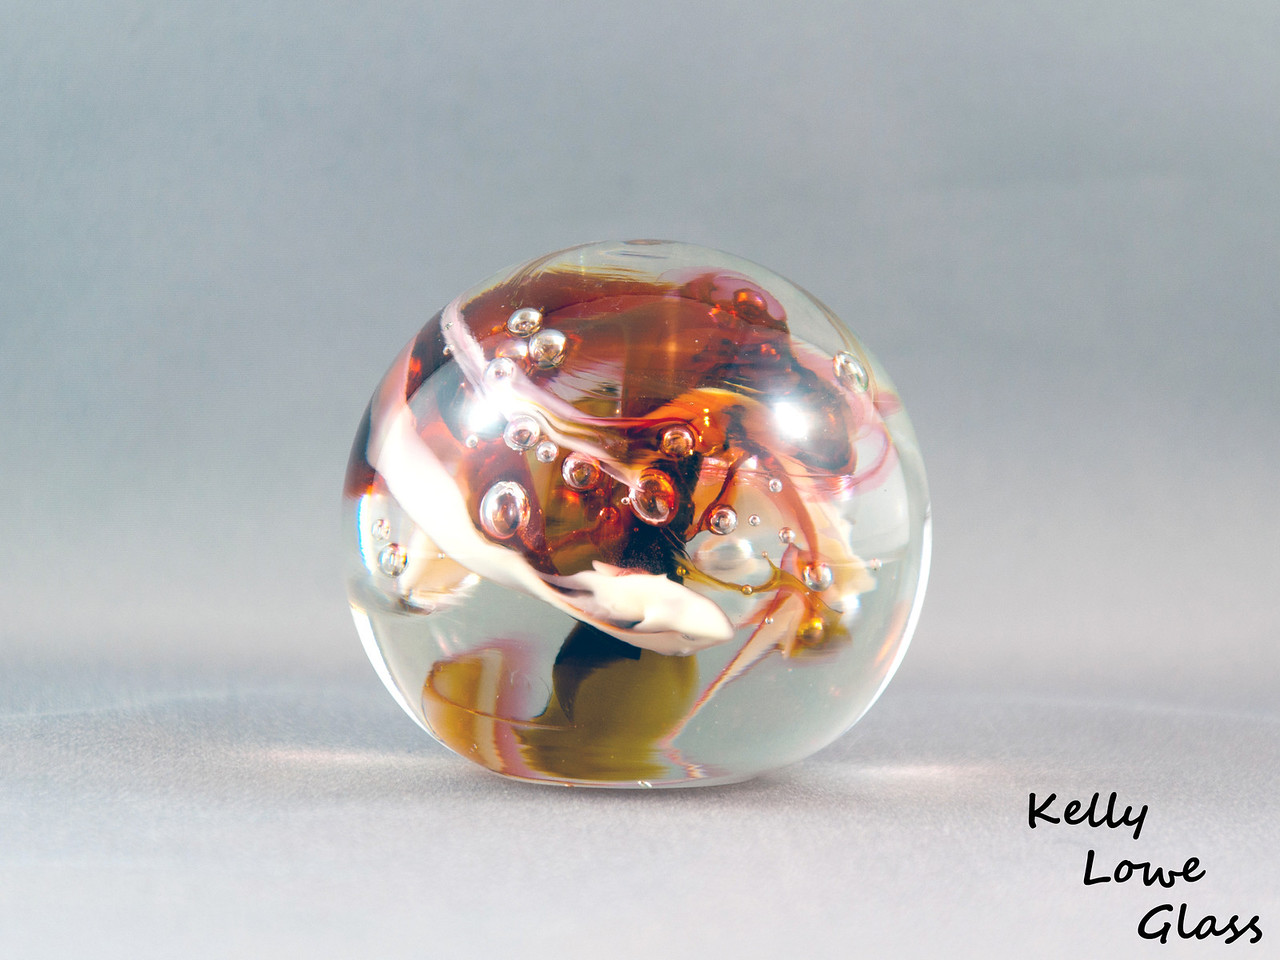 Glass Paperweight:  Widest Point: 8.5cm Height: 7.5cm Weight: Approx 772g.